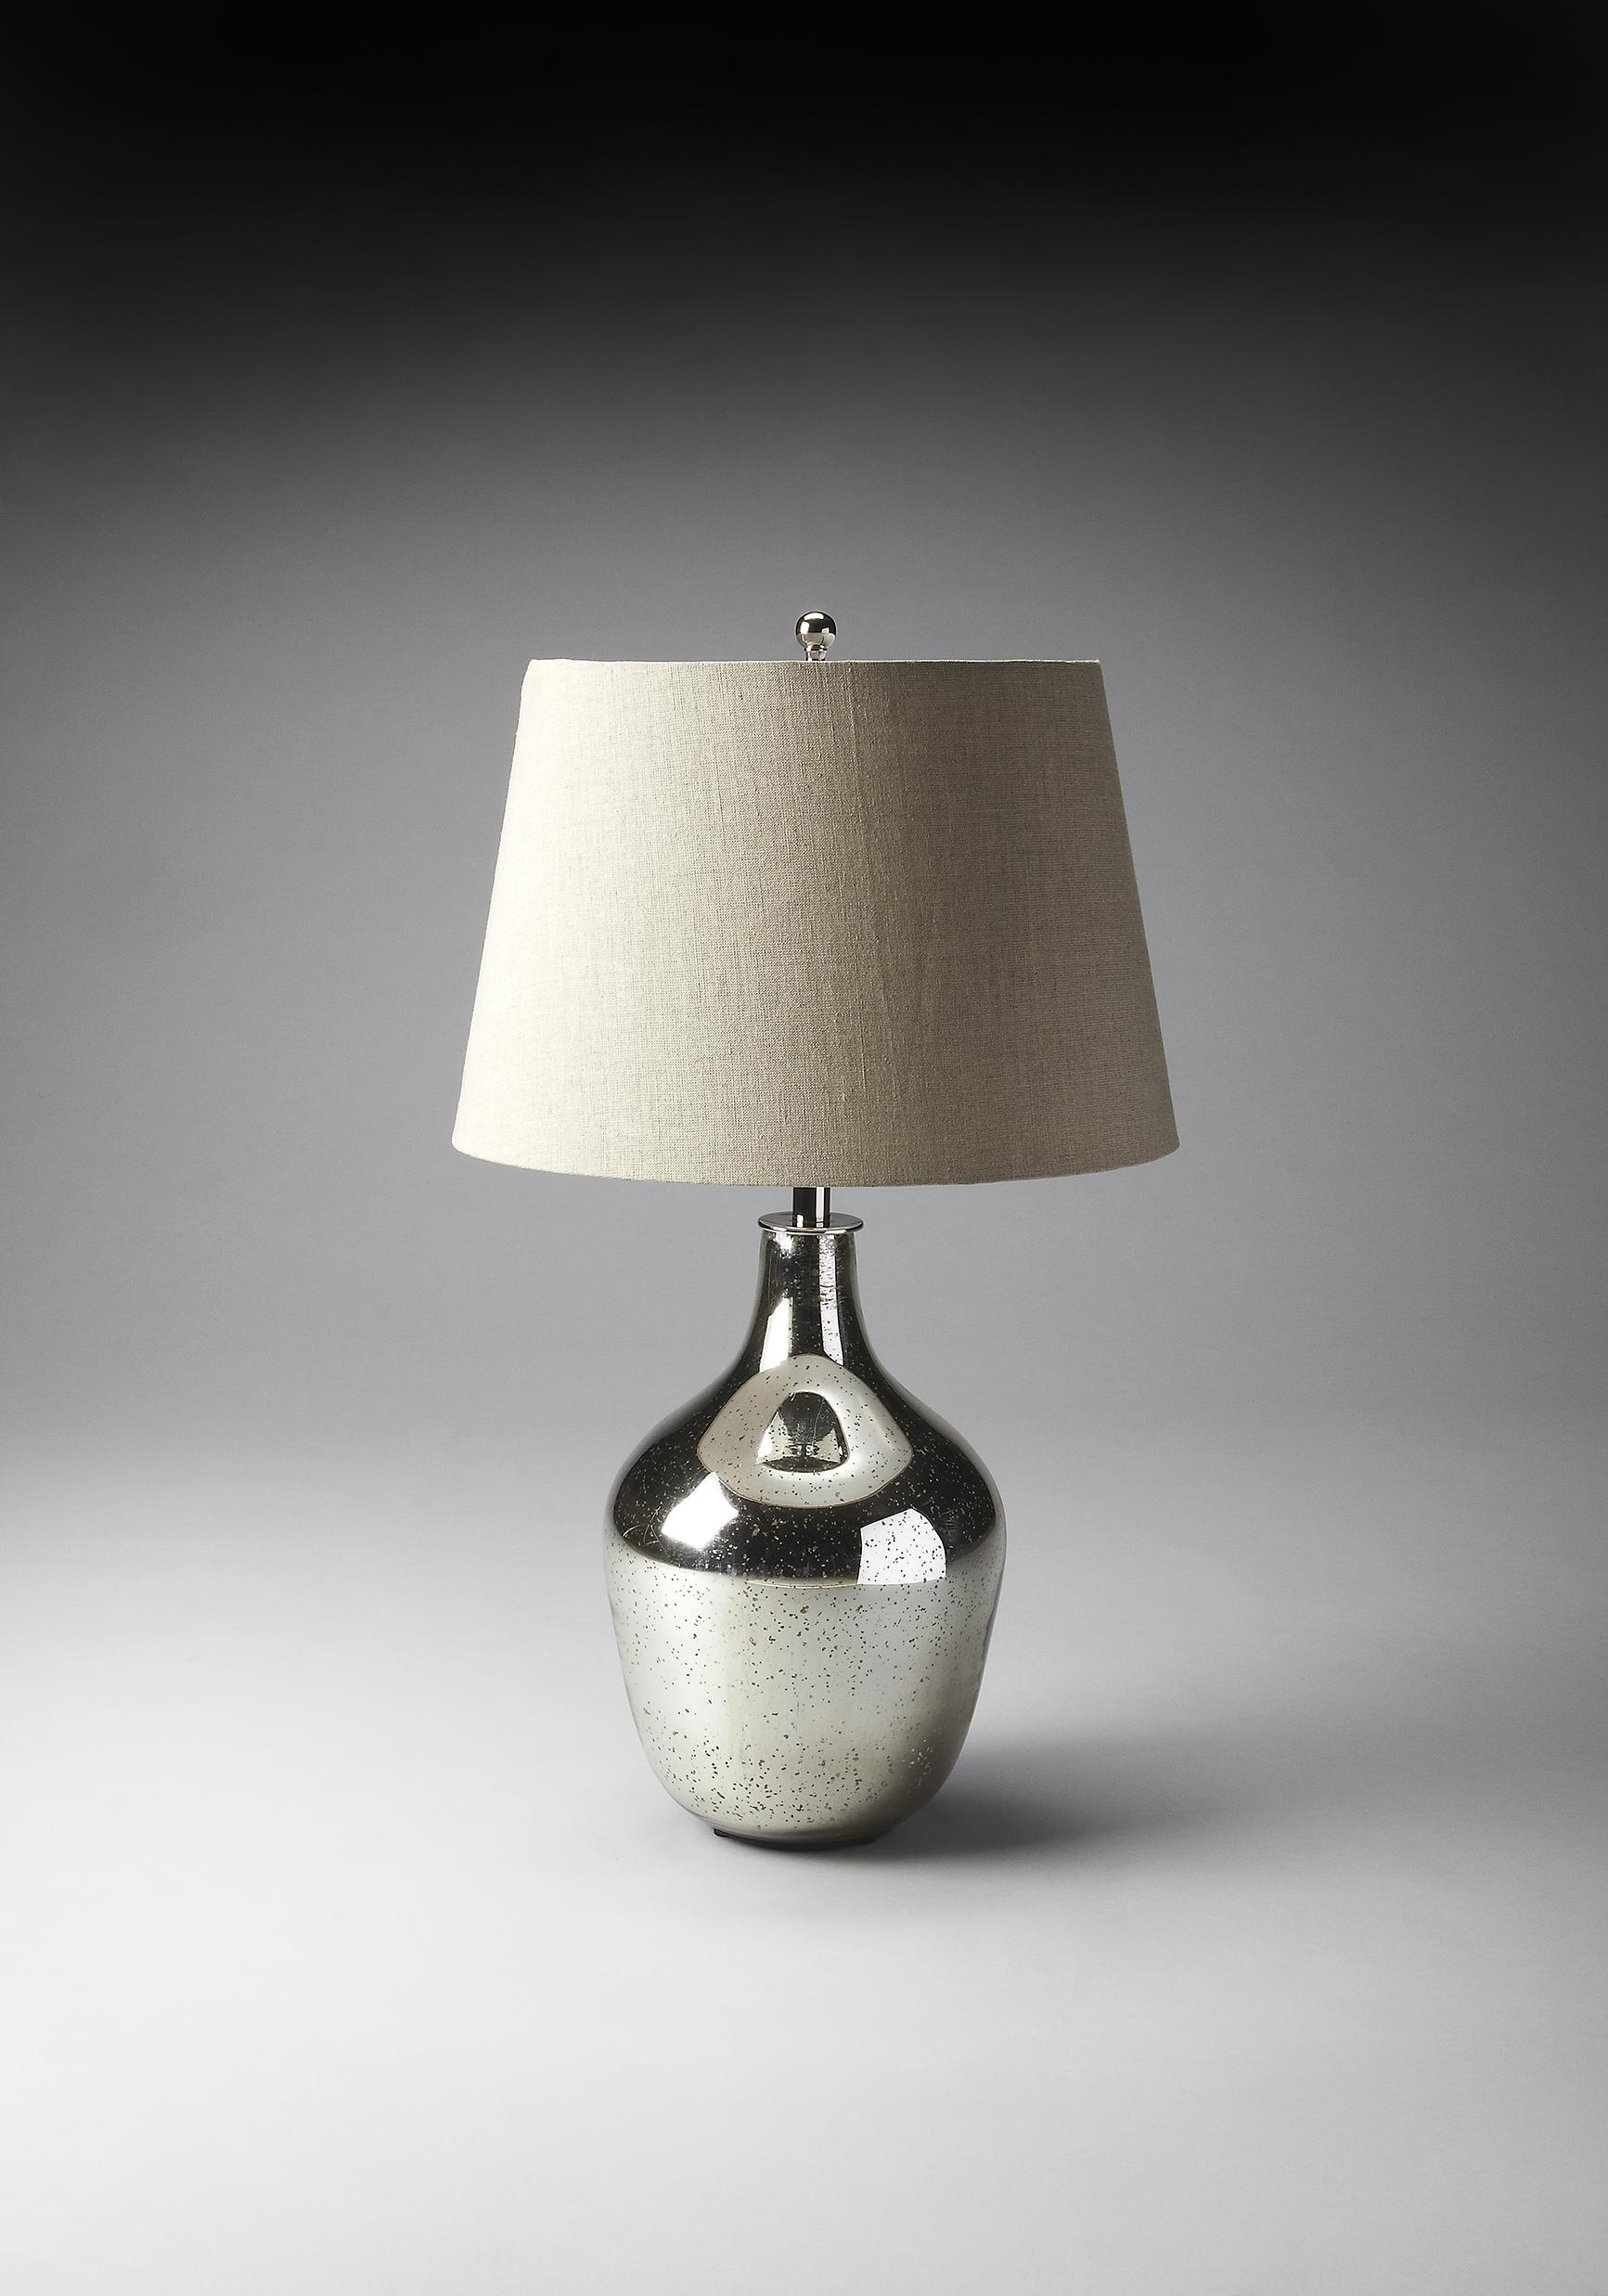 Butler Specialty Company Hors D'oeuvres Table Lamp - Item Number: 7110116